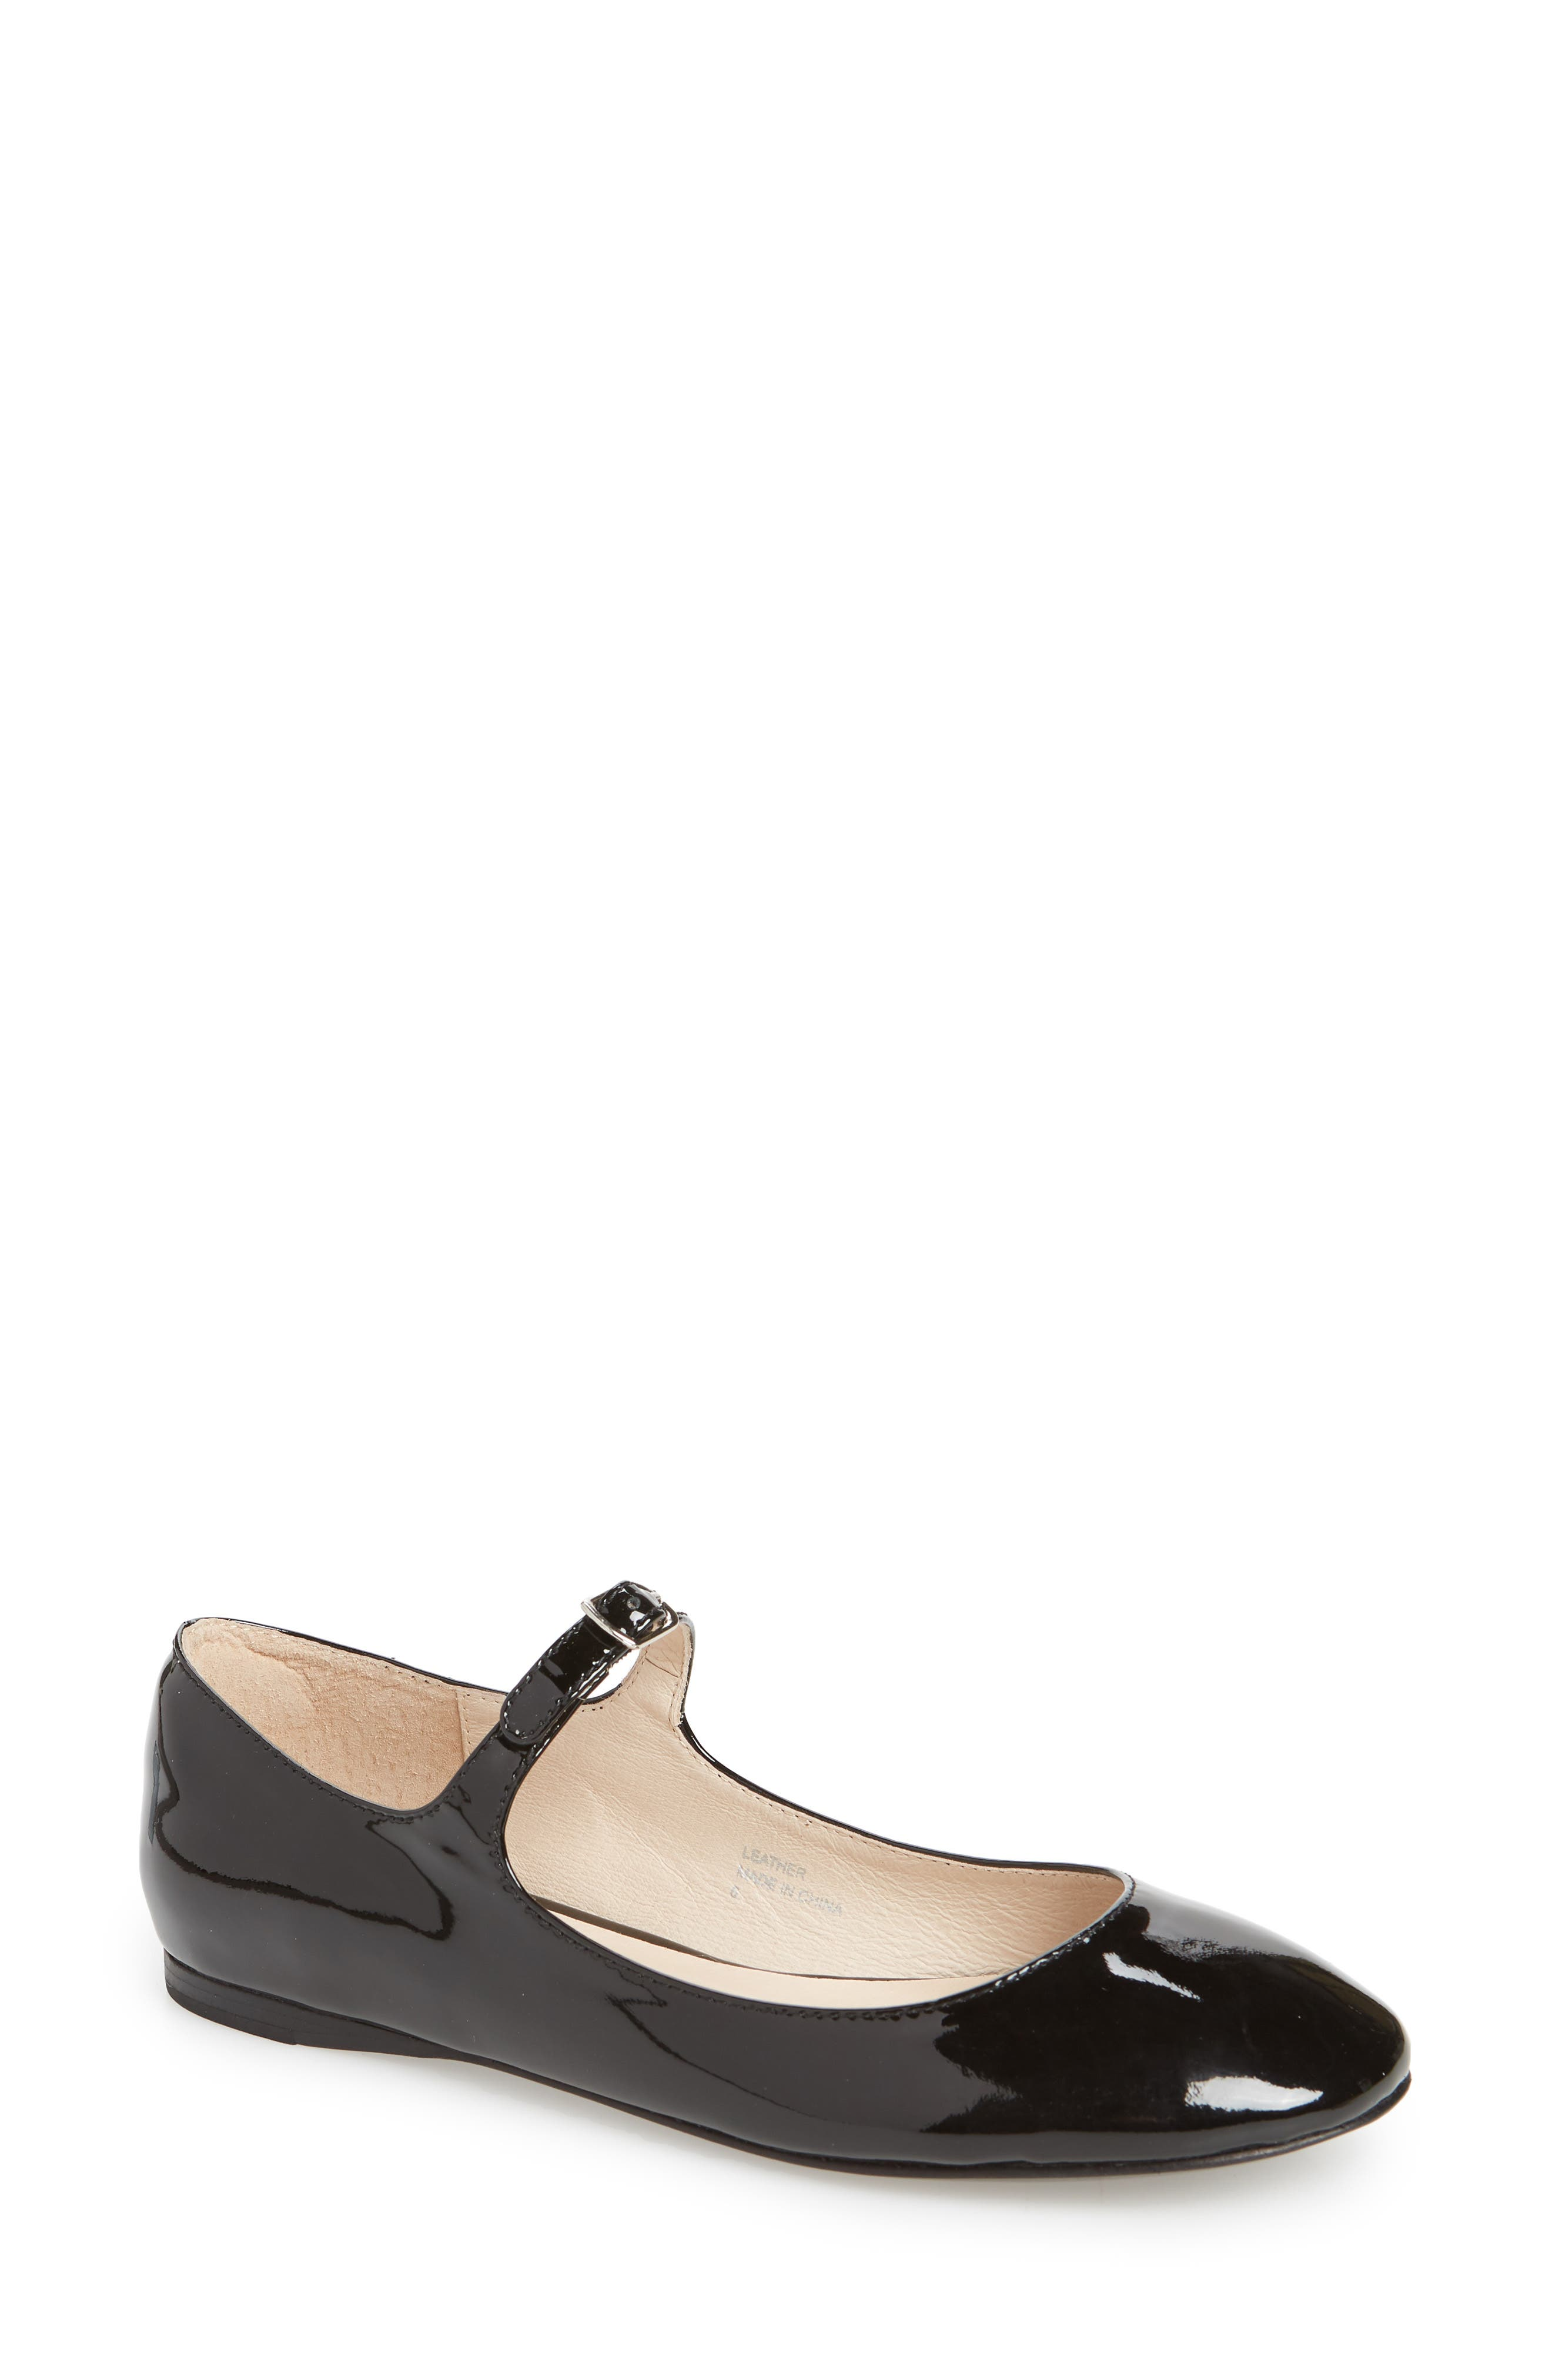 Marcy Mary Jane Flat,                         Main,                         color, 001